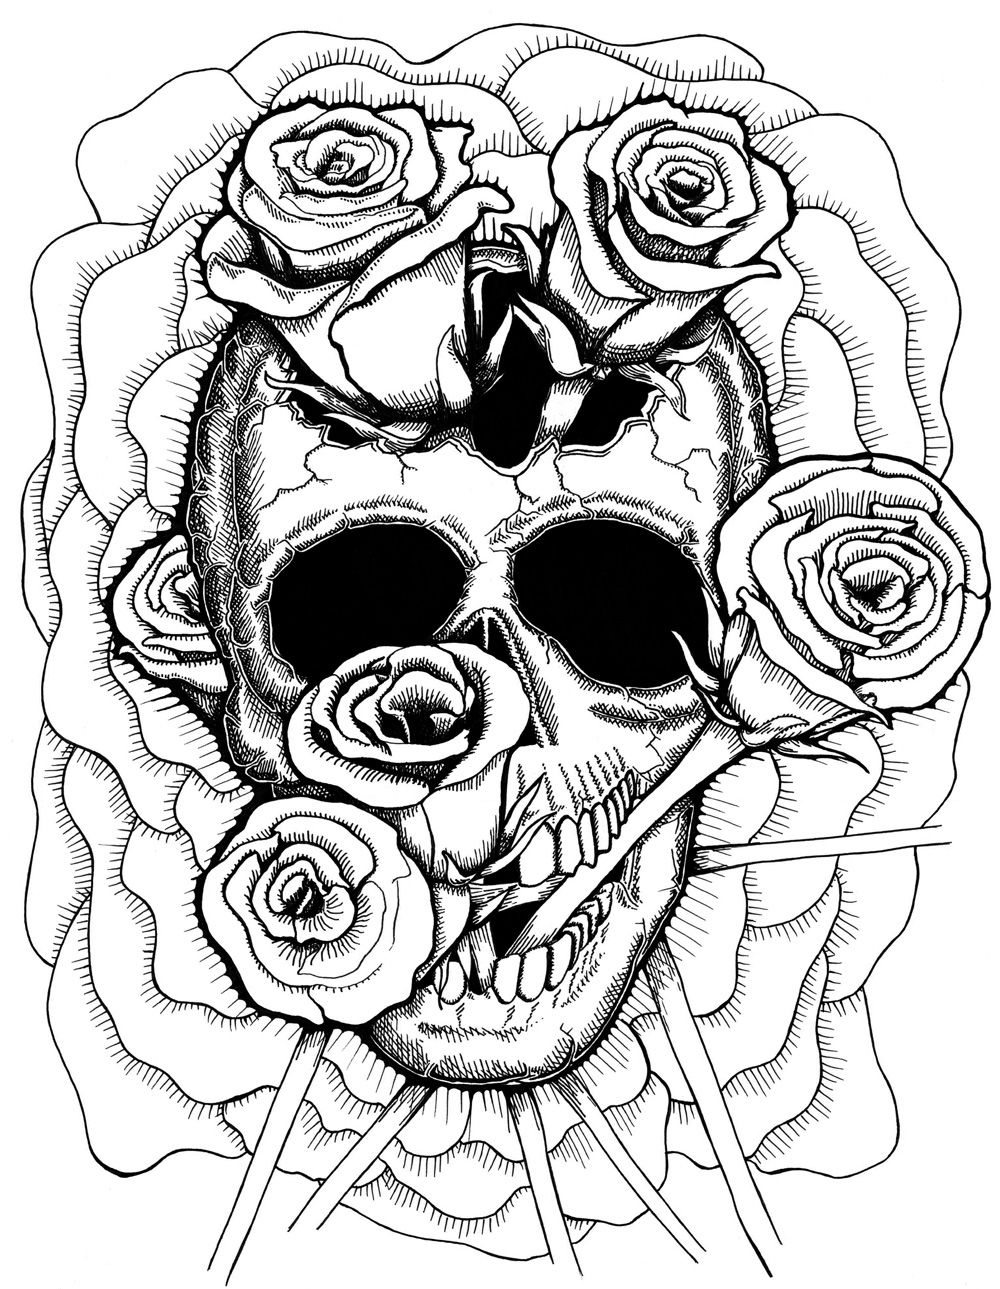 trippy mushroom coloring pages - Google Search | tattoo goals ...